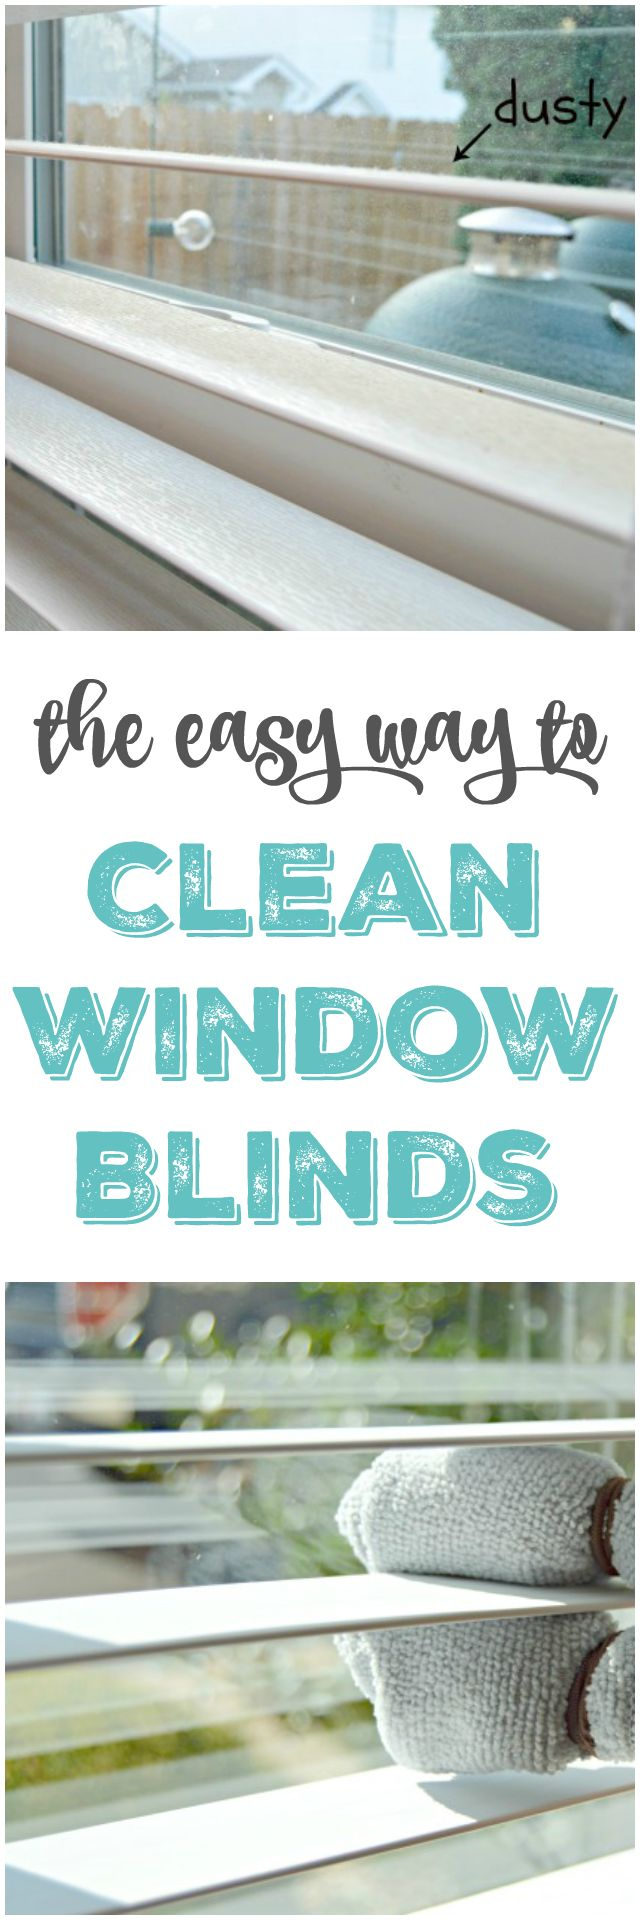 How To Clean Window Blinds. The easy way to clean window blinds with no cleaners at all and without removing them. via @Mom4Real